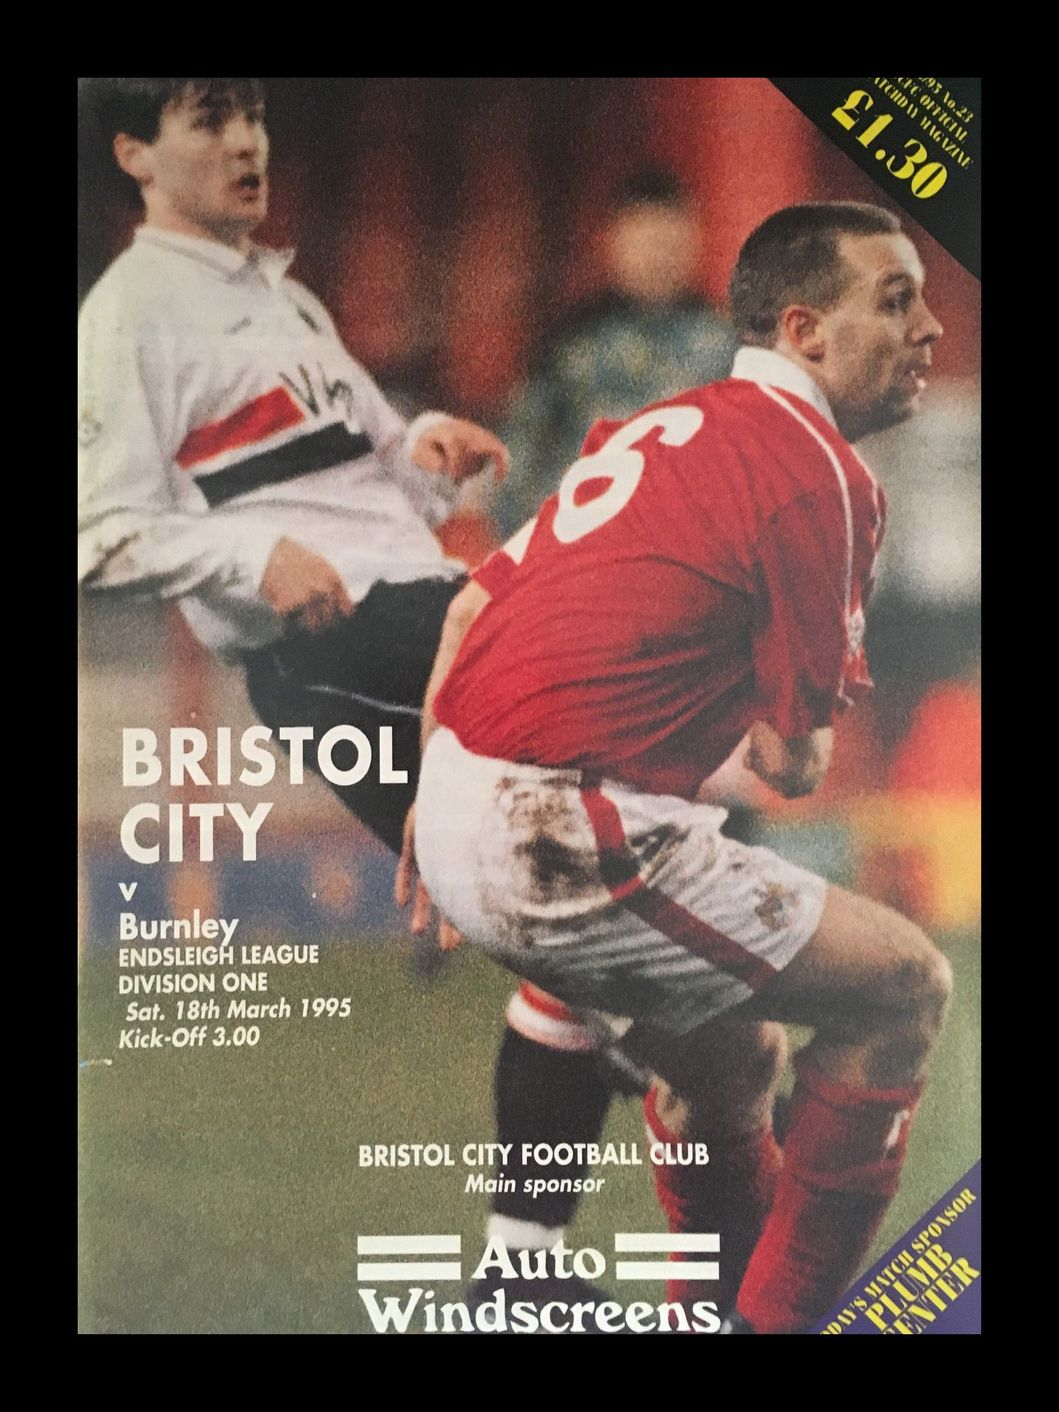 Bristol City v Burnley 18-03-1995 Programme